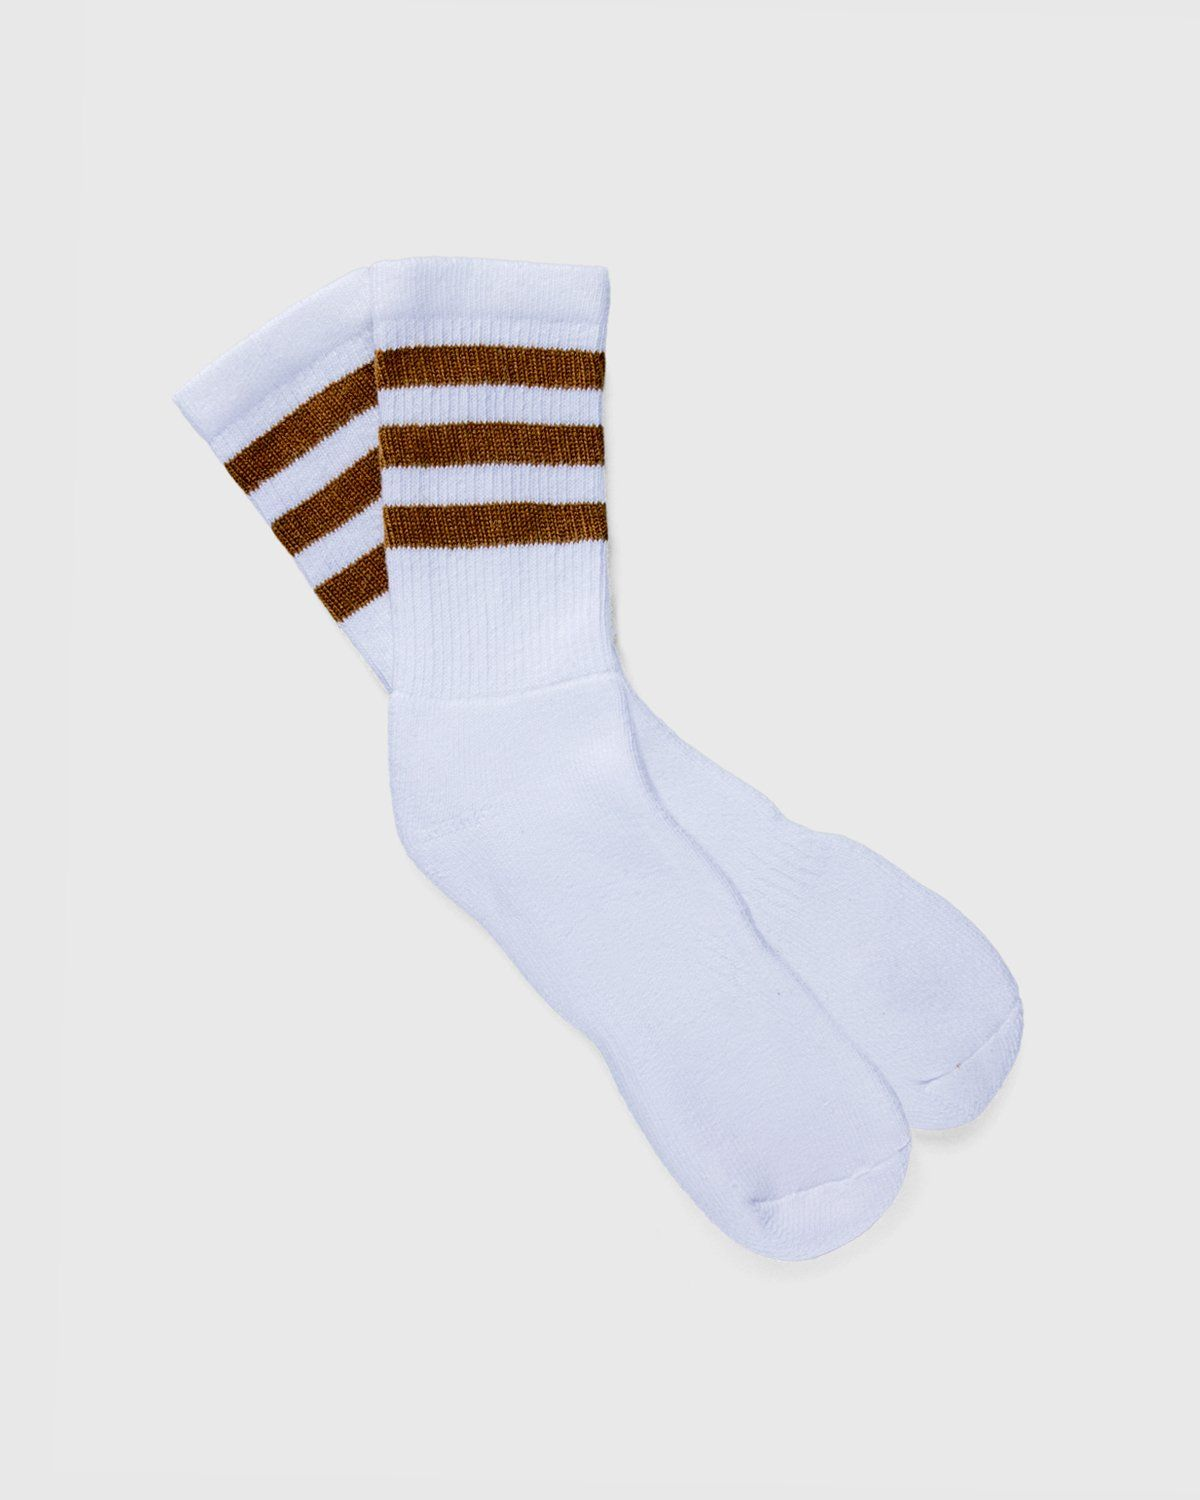 Darryl Brown — Sock Set Multicolour - Image 4